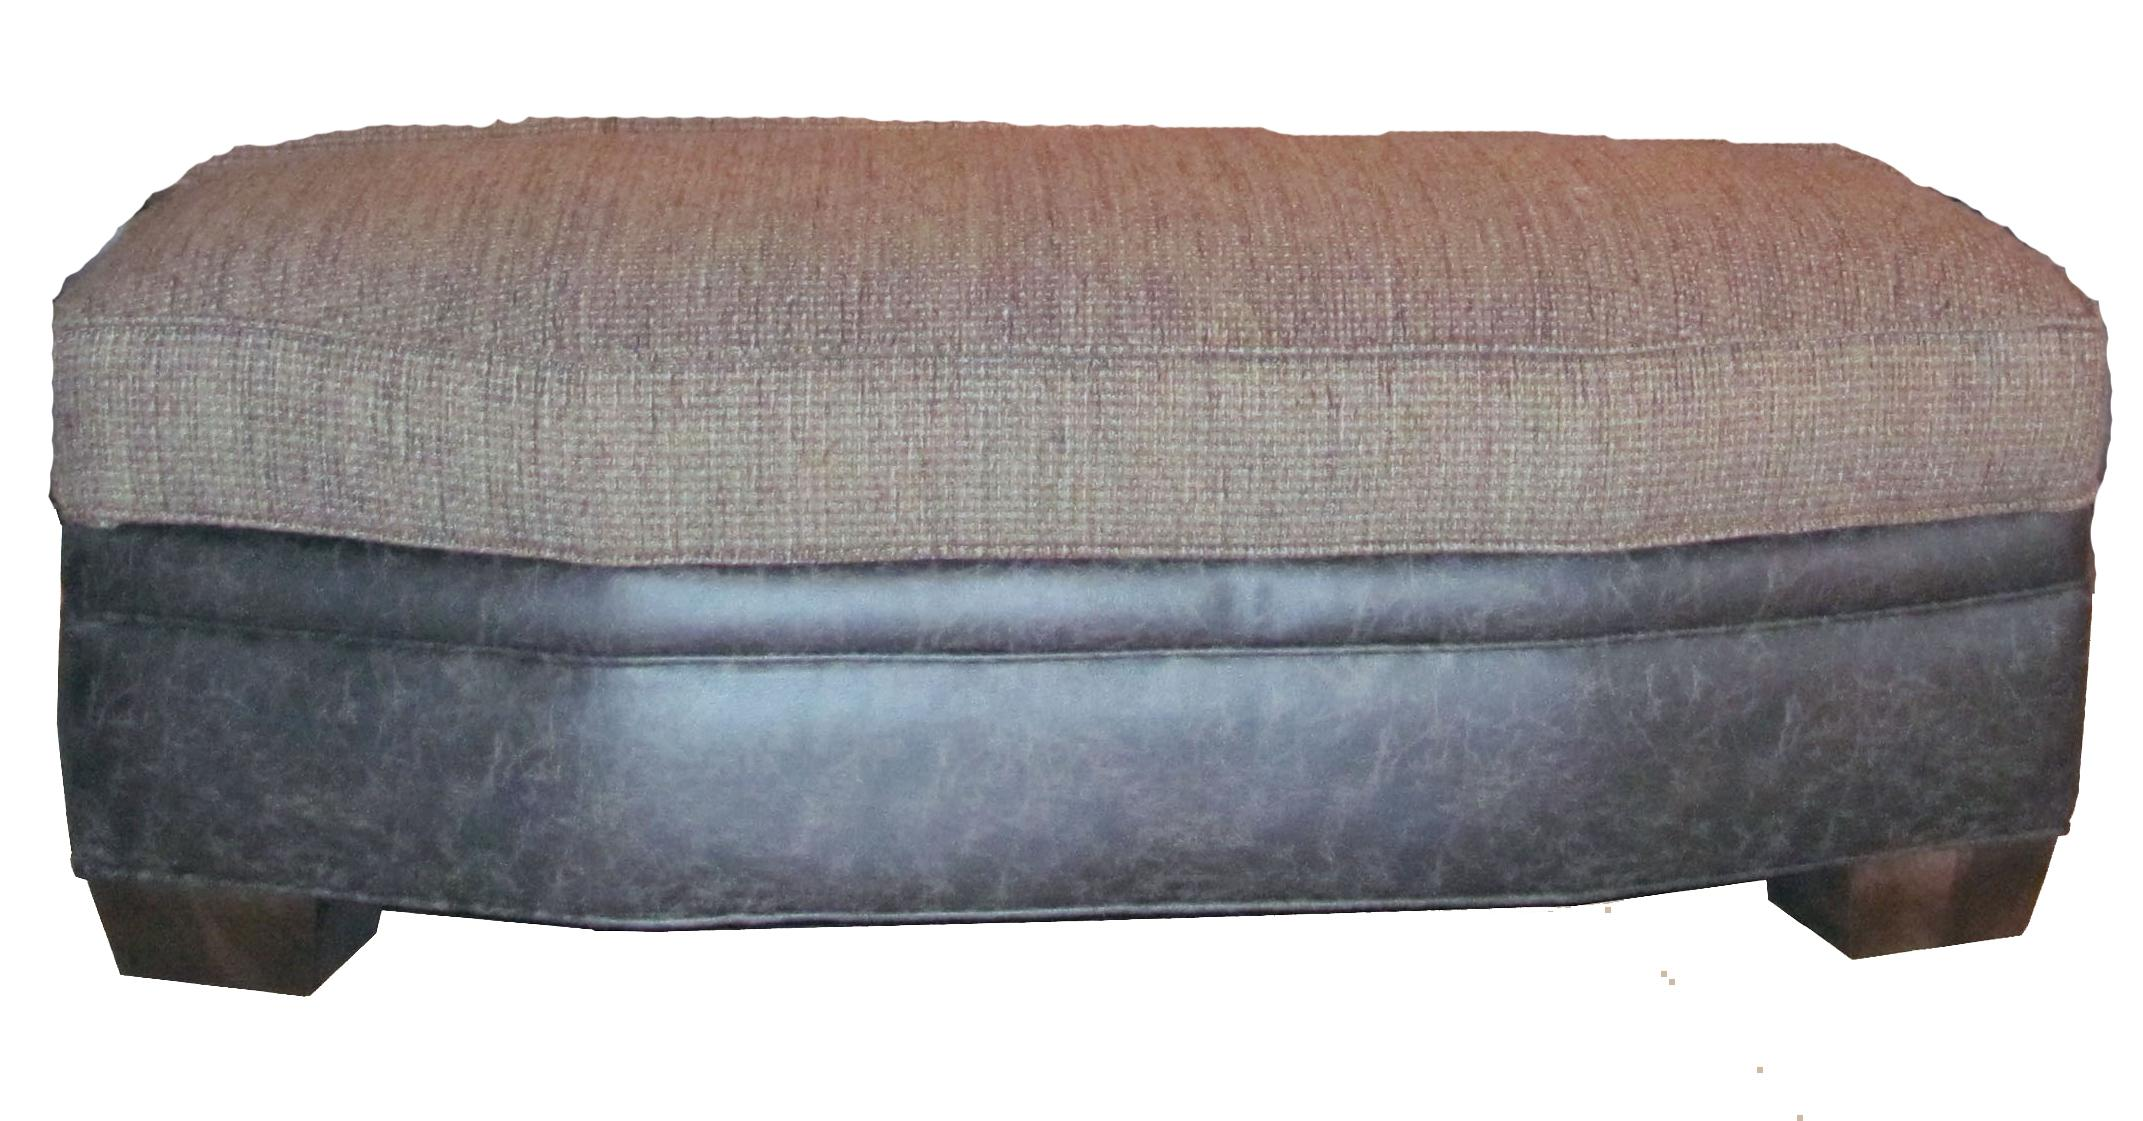 marshfield baldwin sofa ebay slipcovers casual jumbo storage ottoman conlin 39s